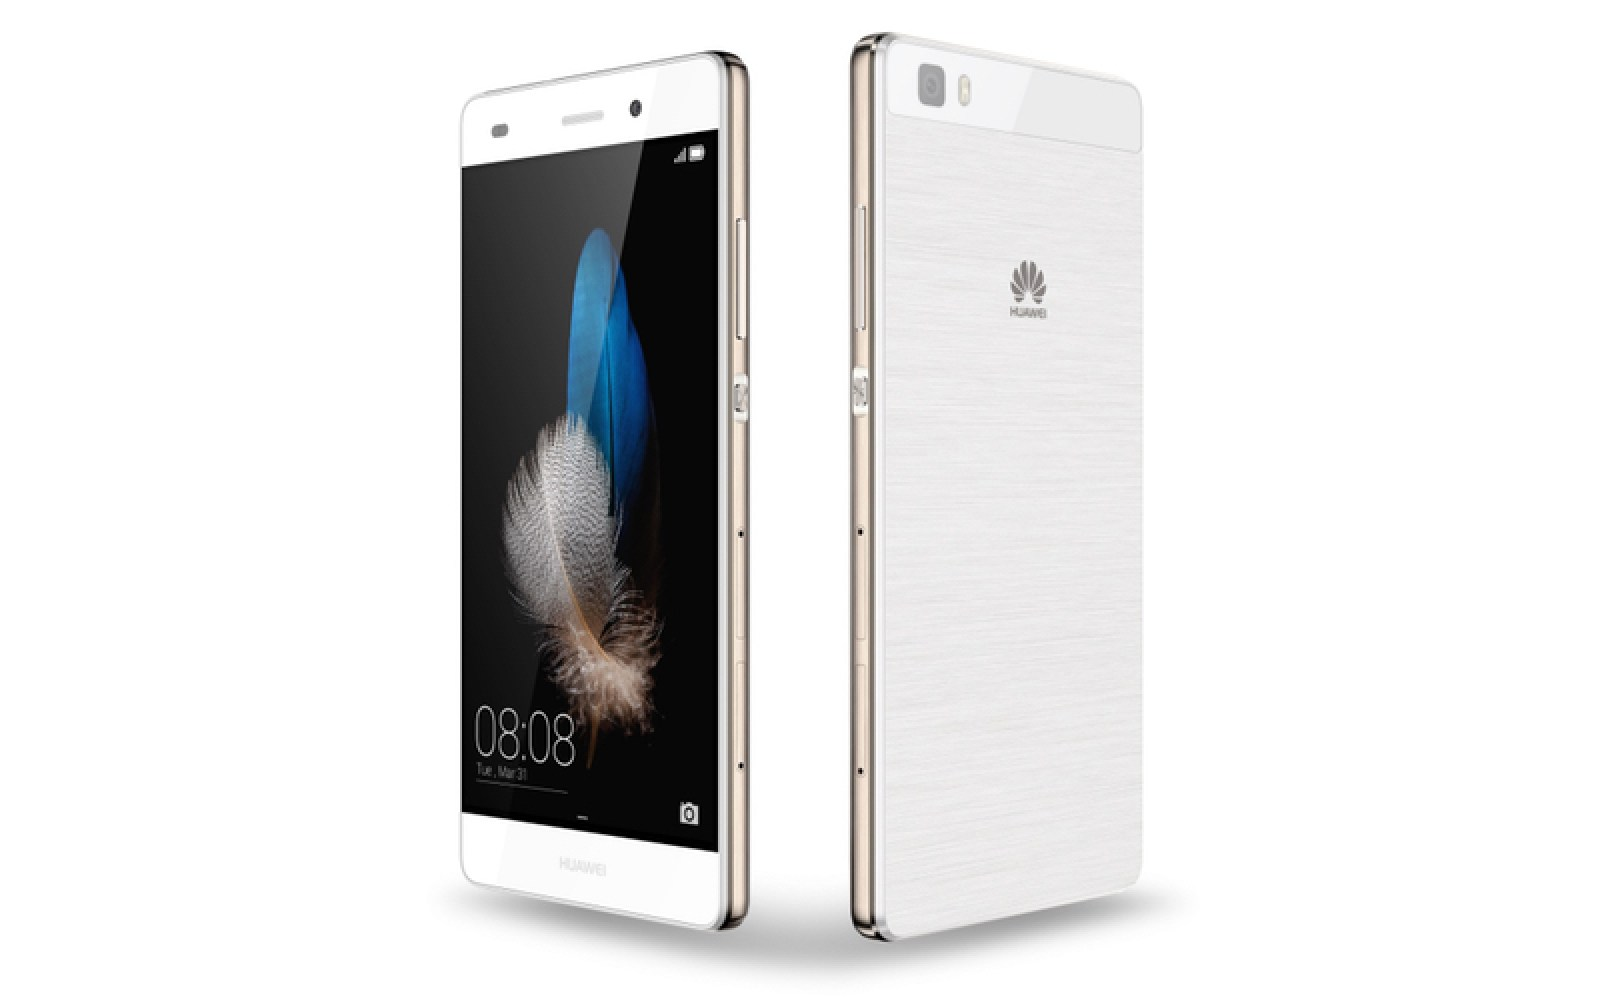 Huawei has shipped an impressive 10 million P8 Lite smartphones since launch